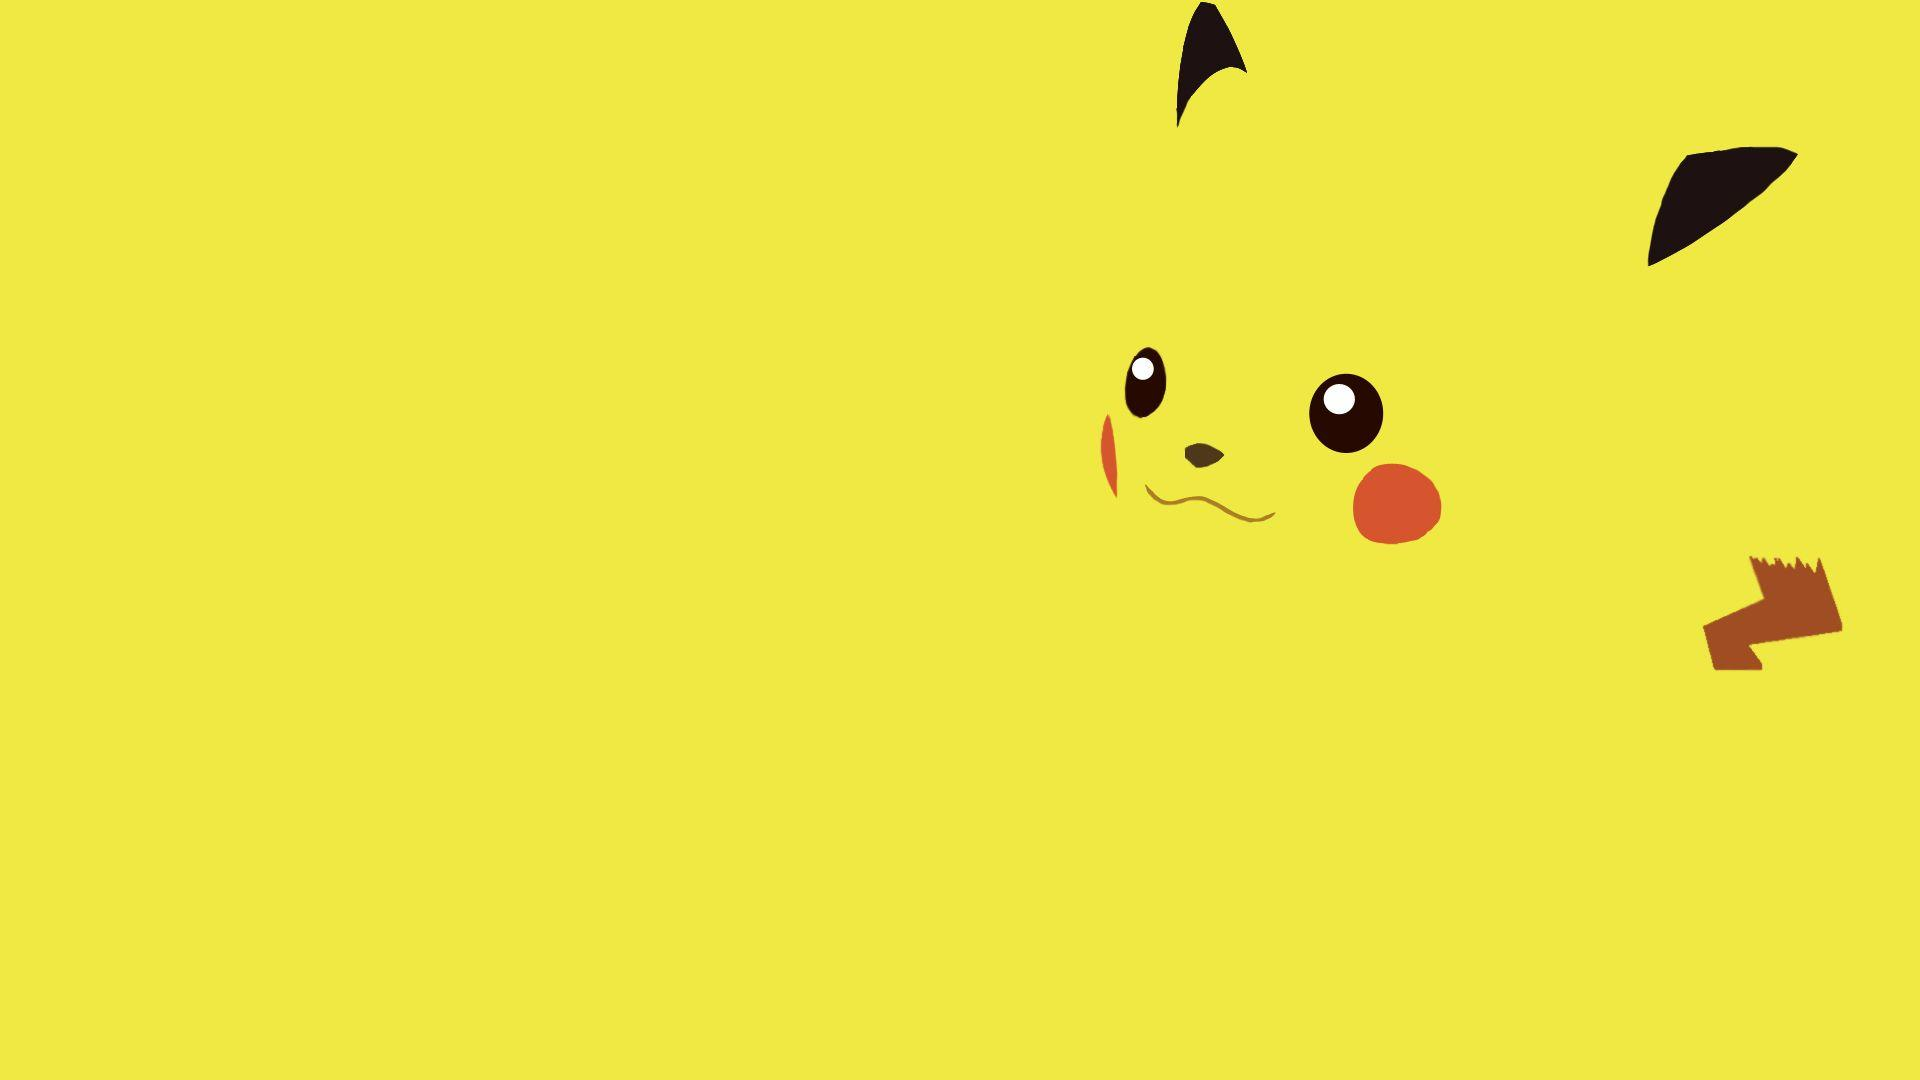 Pokemon Pikachu Wallpapers   Amazing wallpapers and